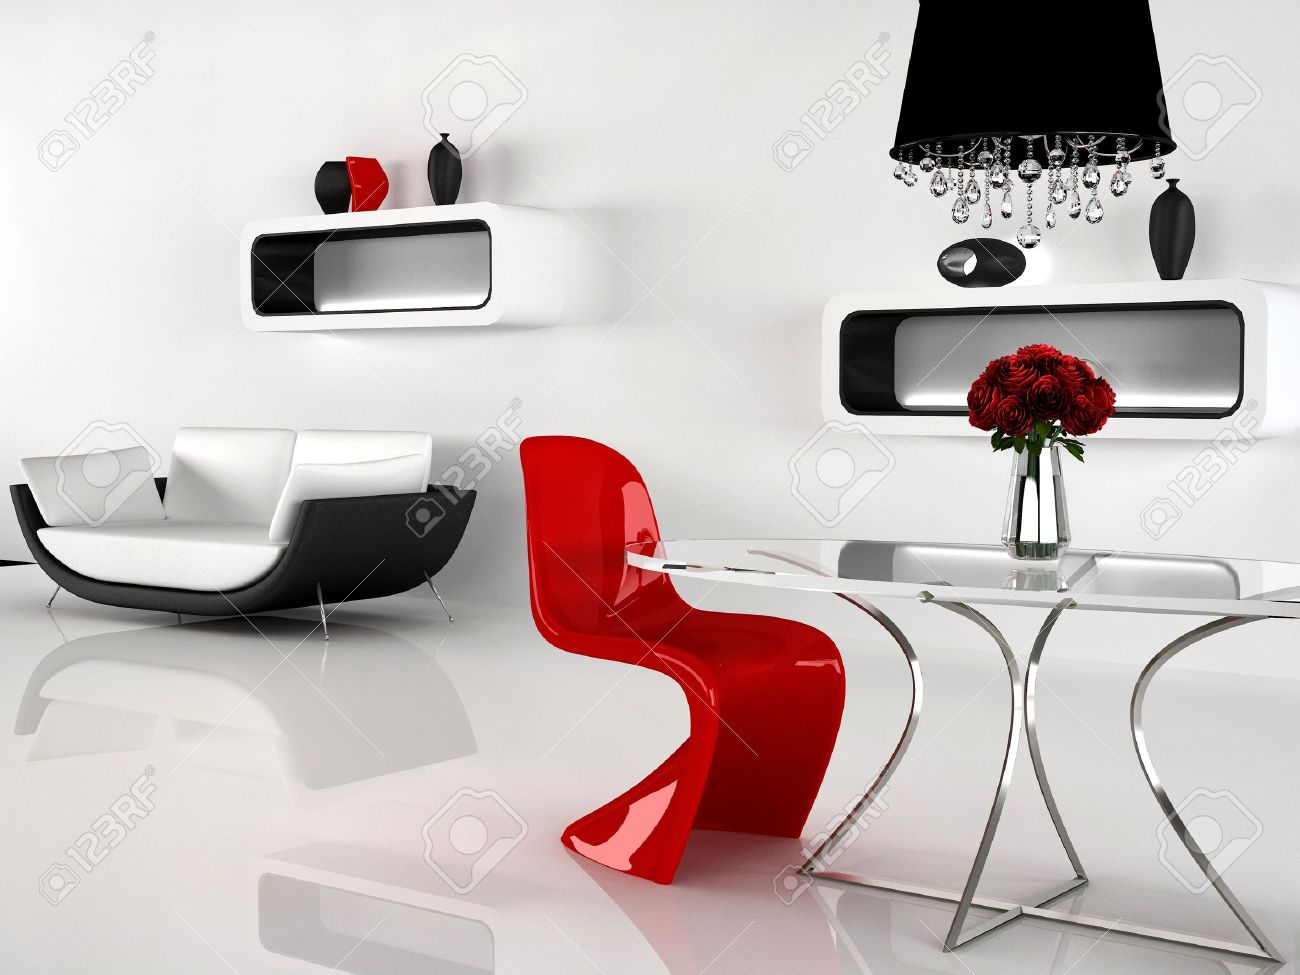 Minimalism And Baroque Furniture In Interior. Modern Sofa, Red Chair,  Table, Chandelier